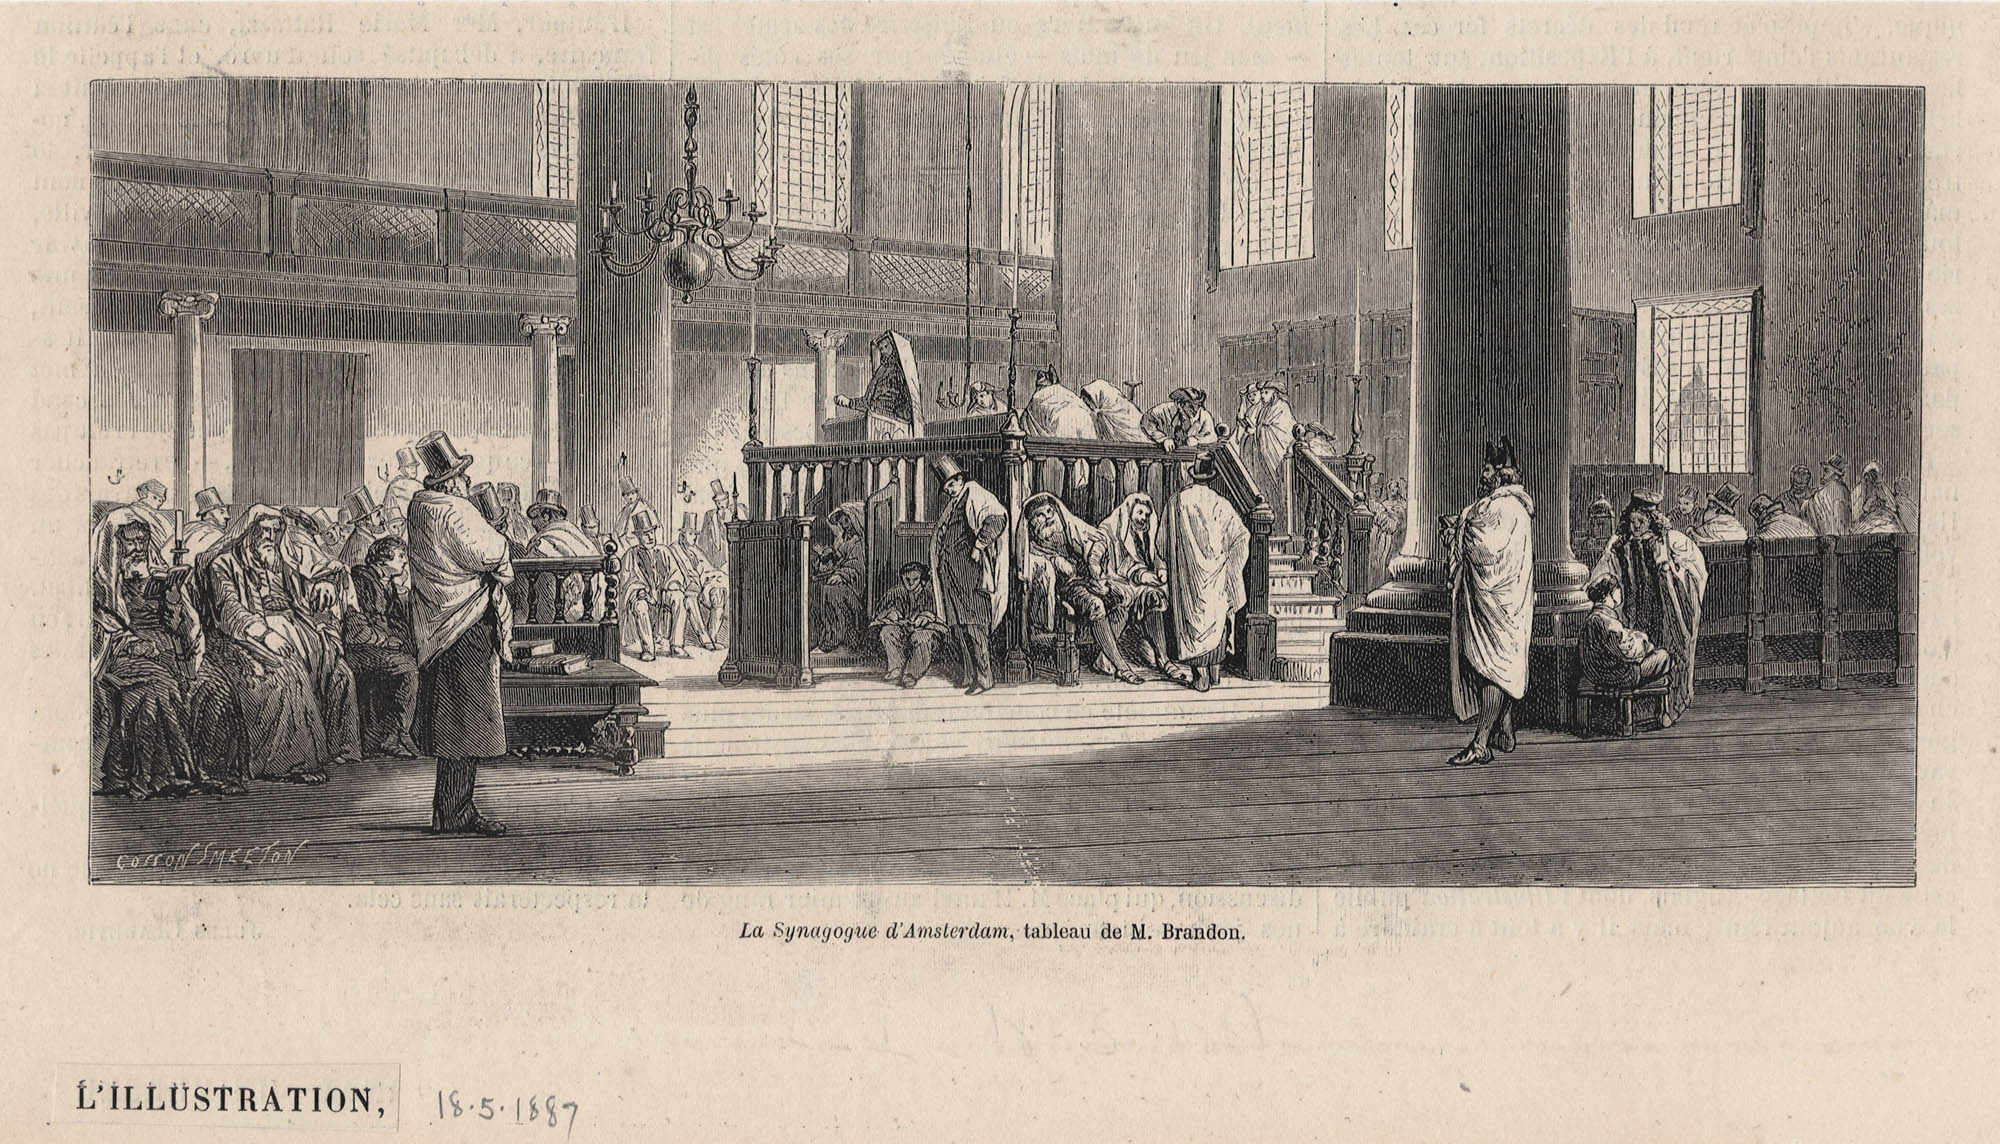 La Synagogue d'Amsterdam, tableau de M. Brandon